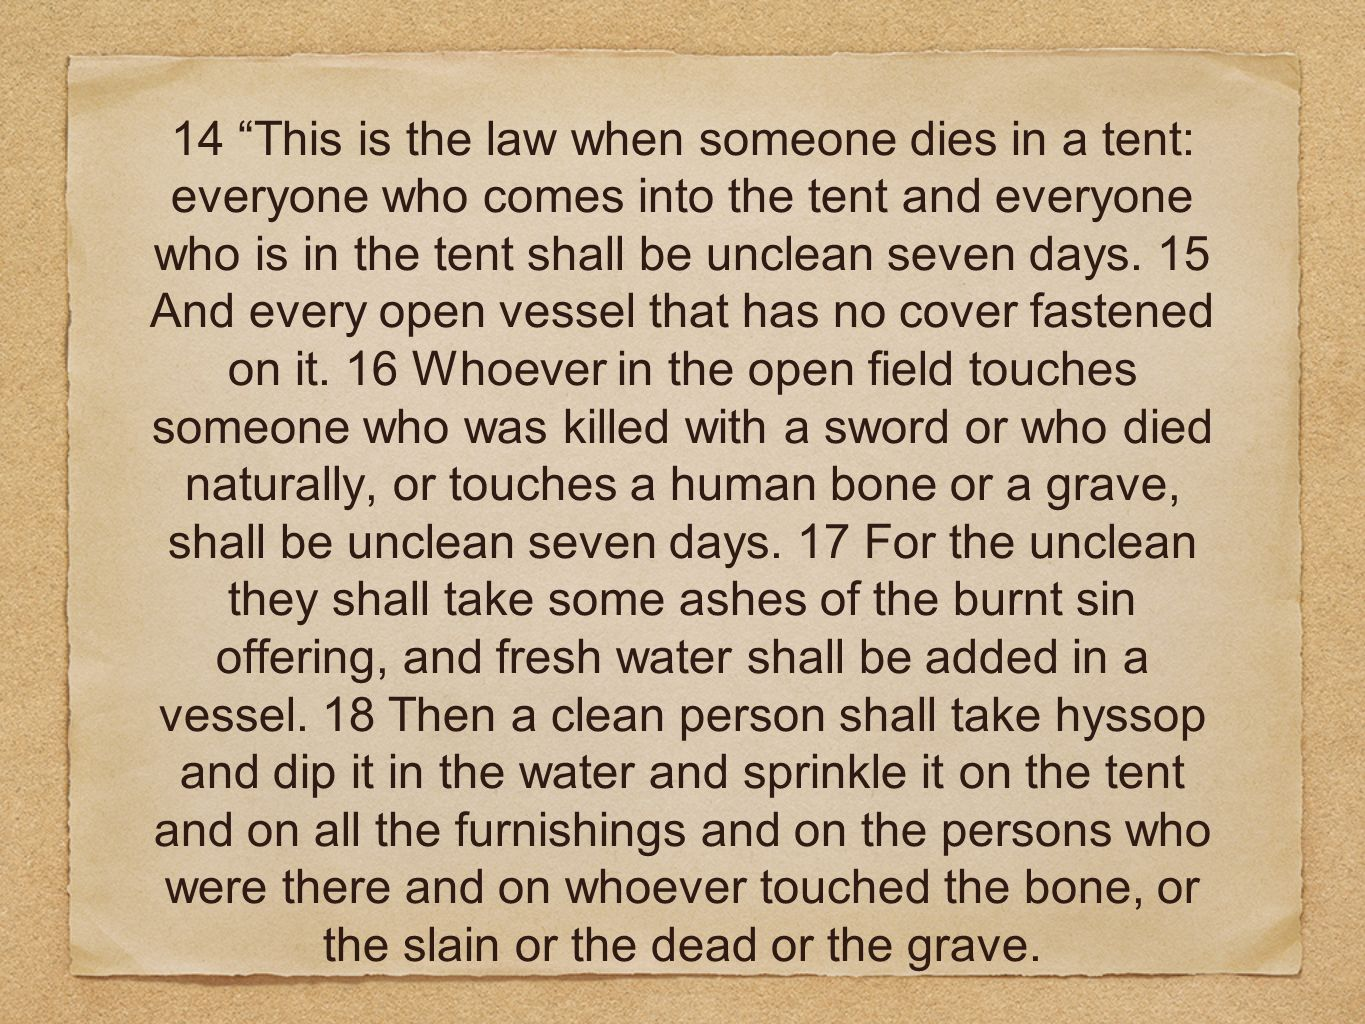 14 This is the law when someone dies in a tent: everyone who comes into the tent and everyone who is in the tent shall be unclean seven days.